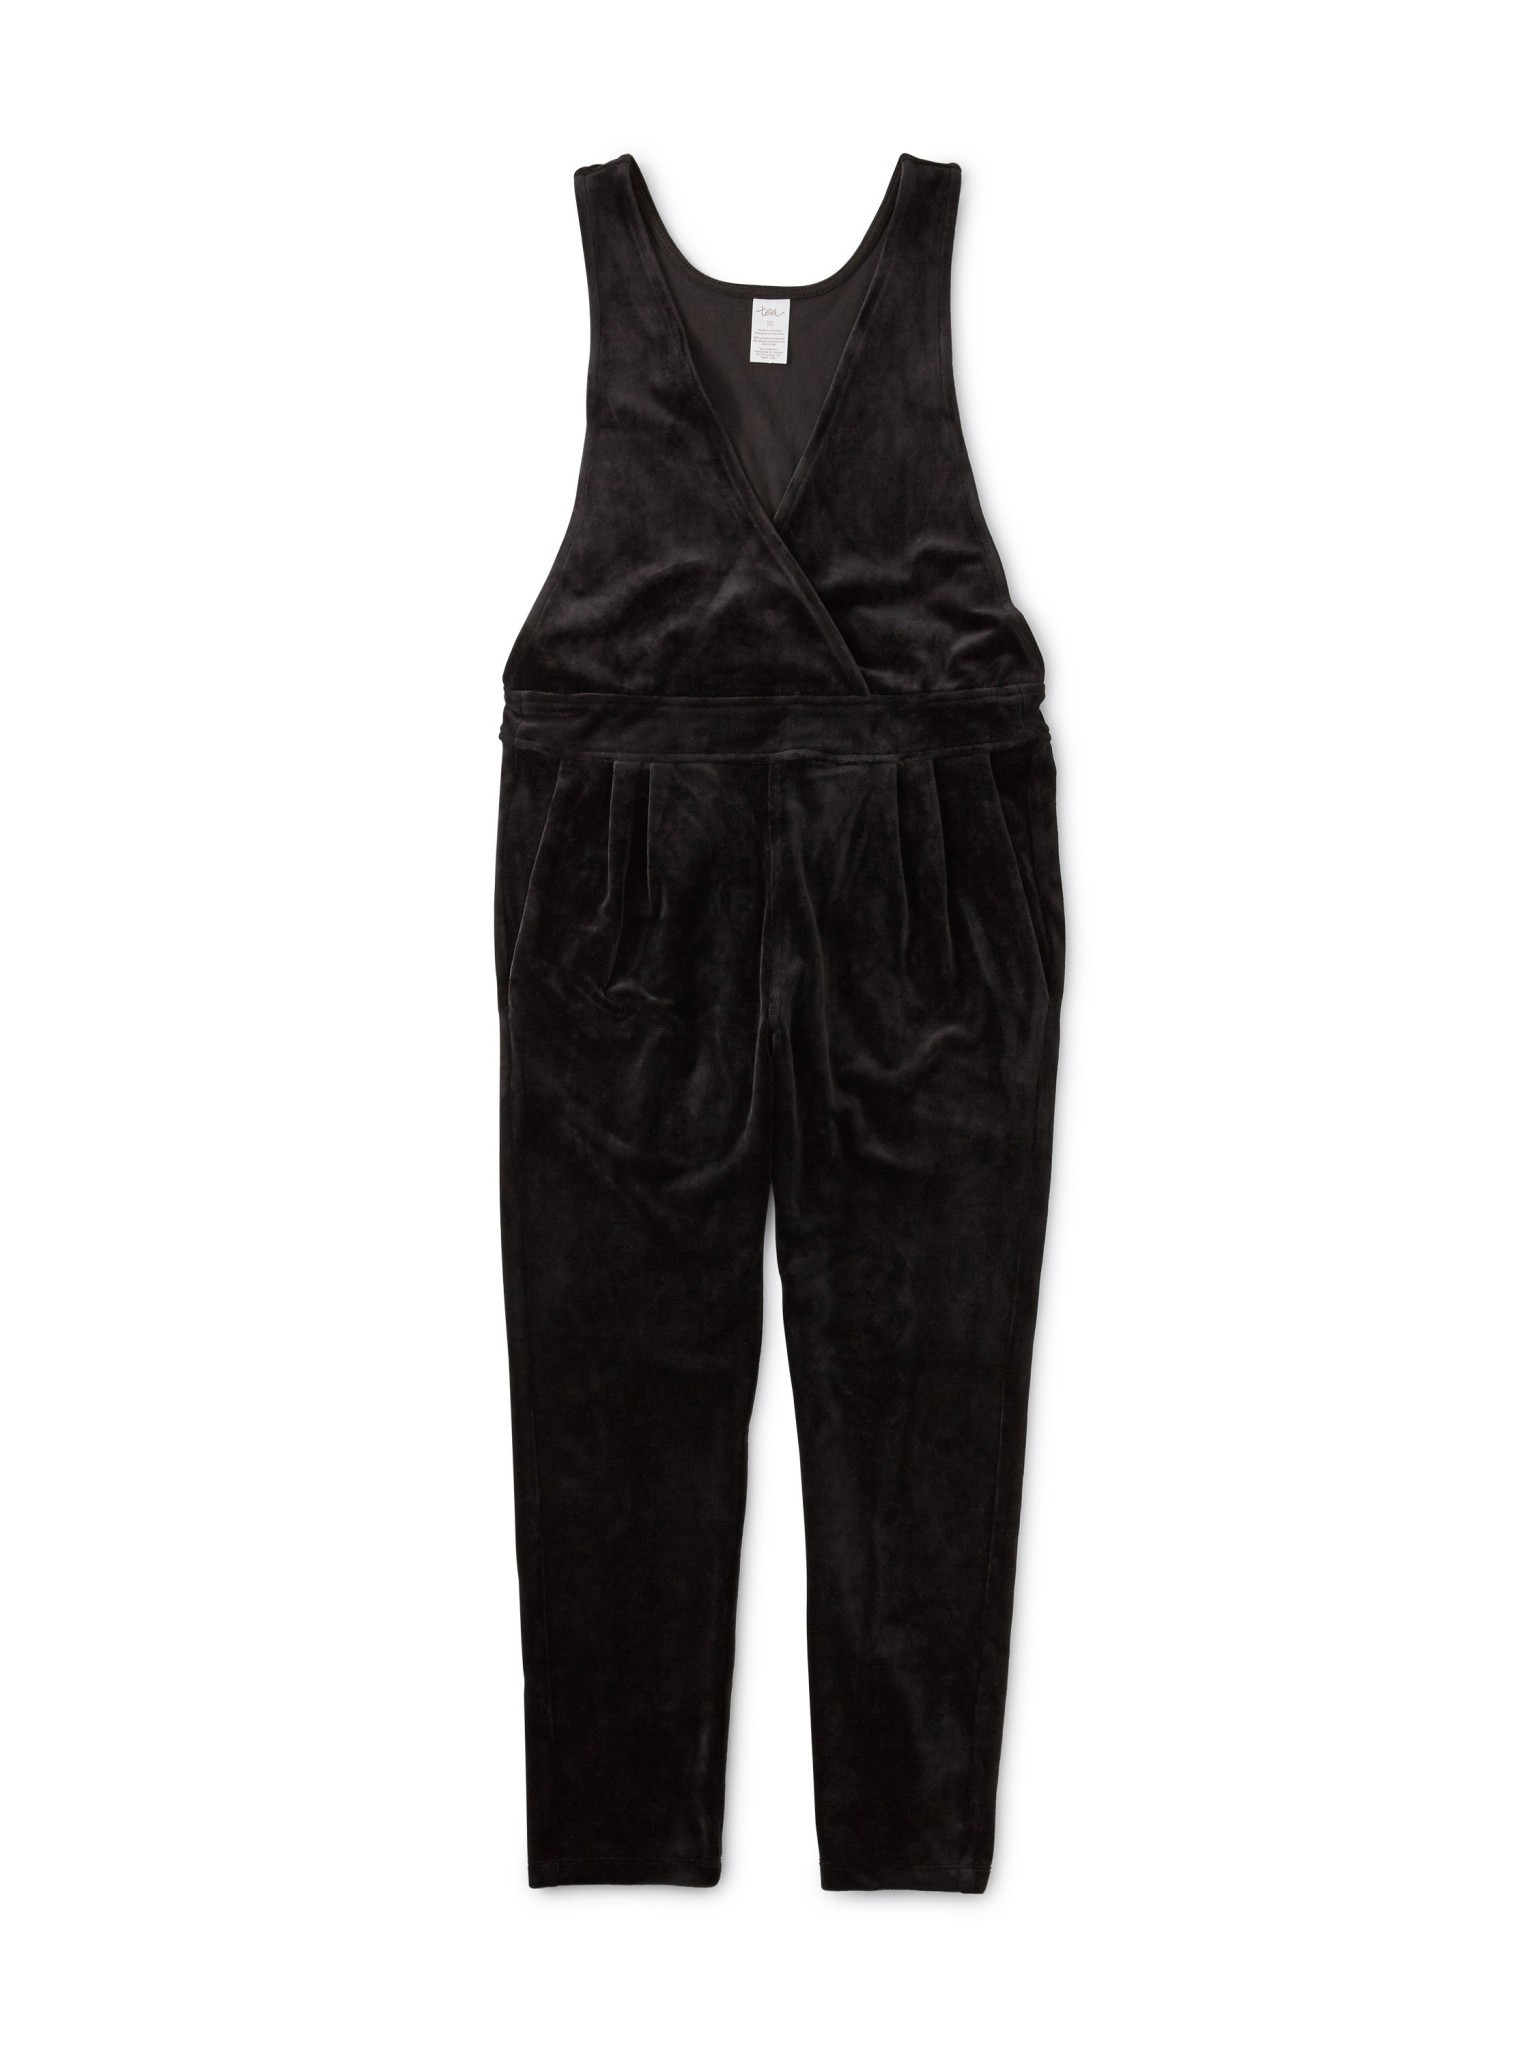 Tea Collection Black Velour Romper